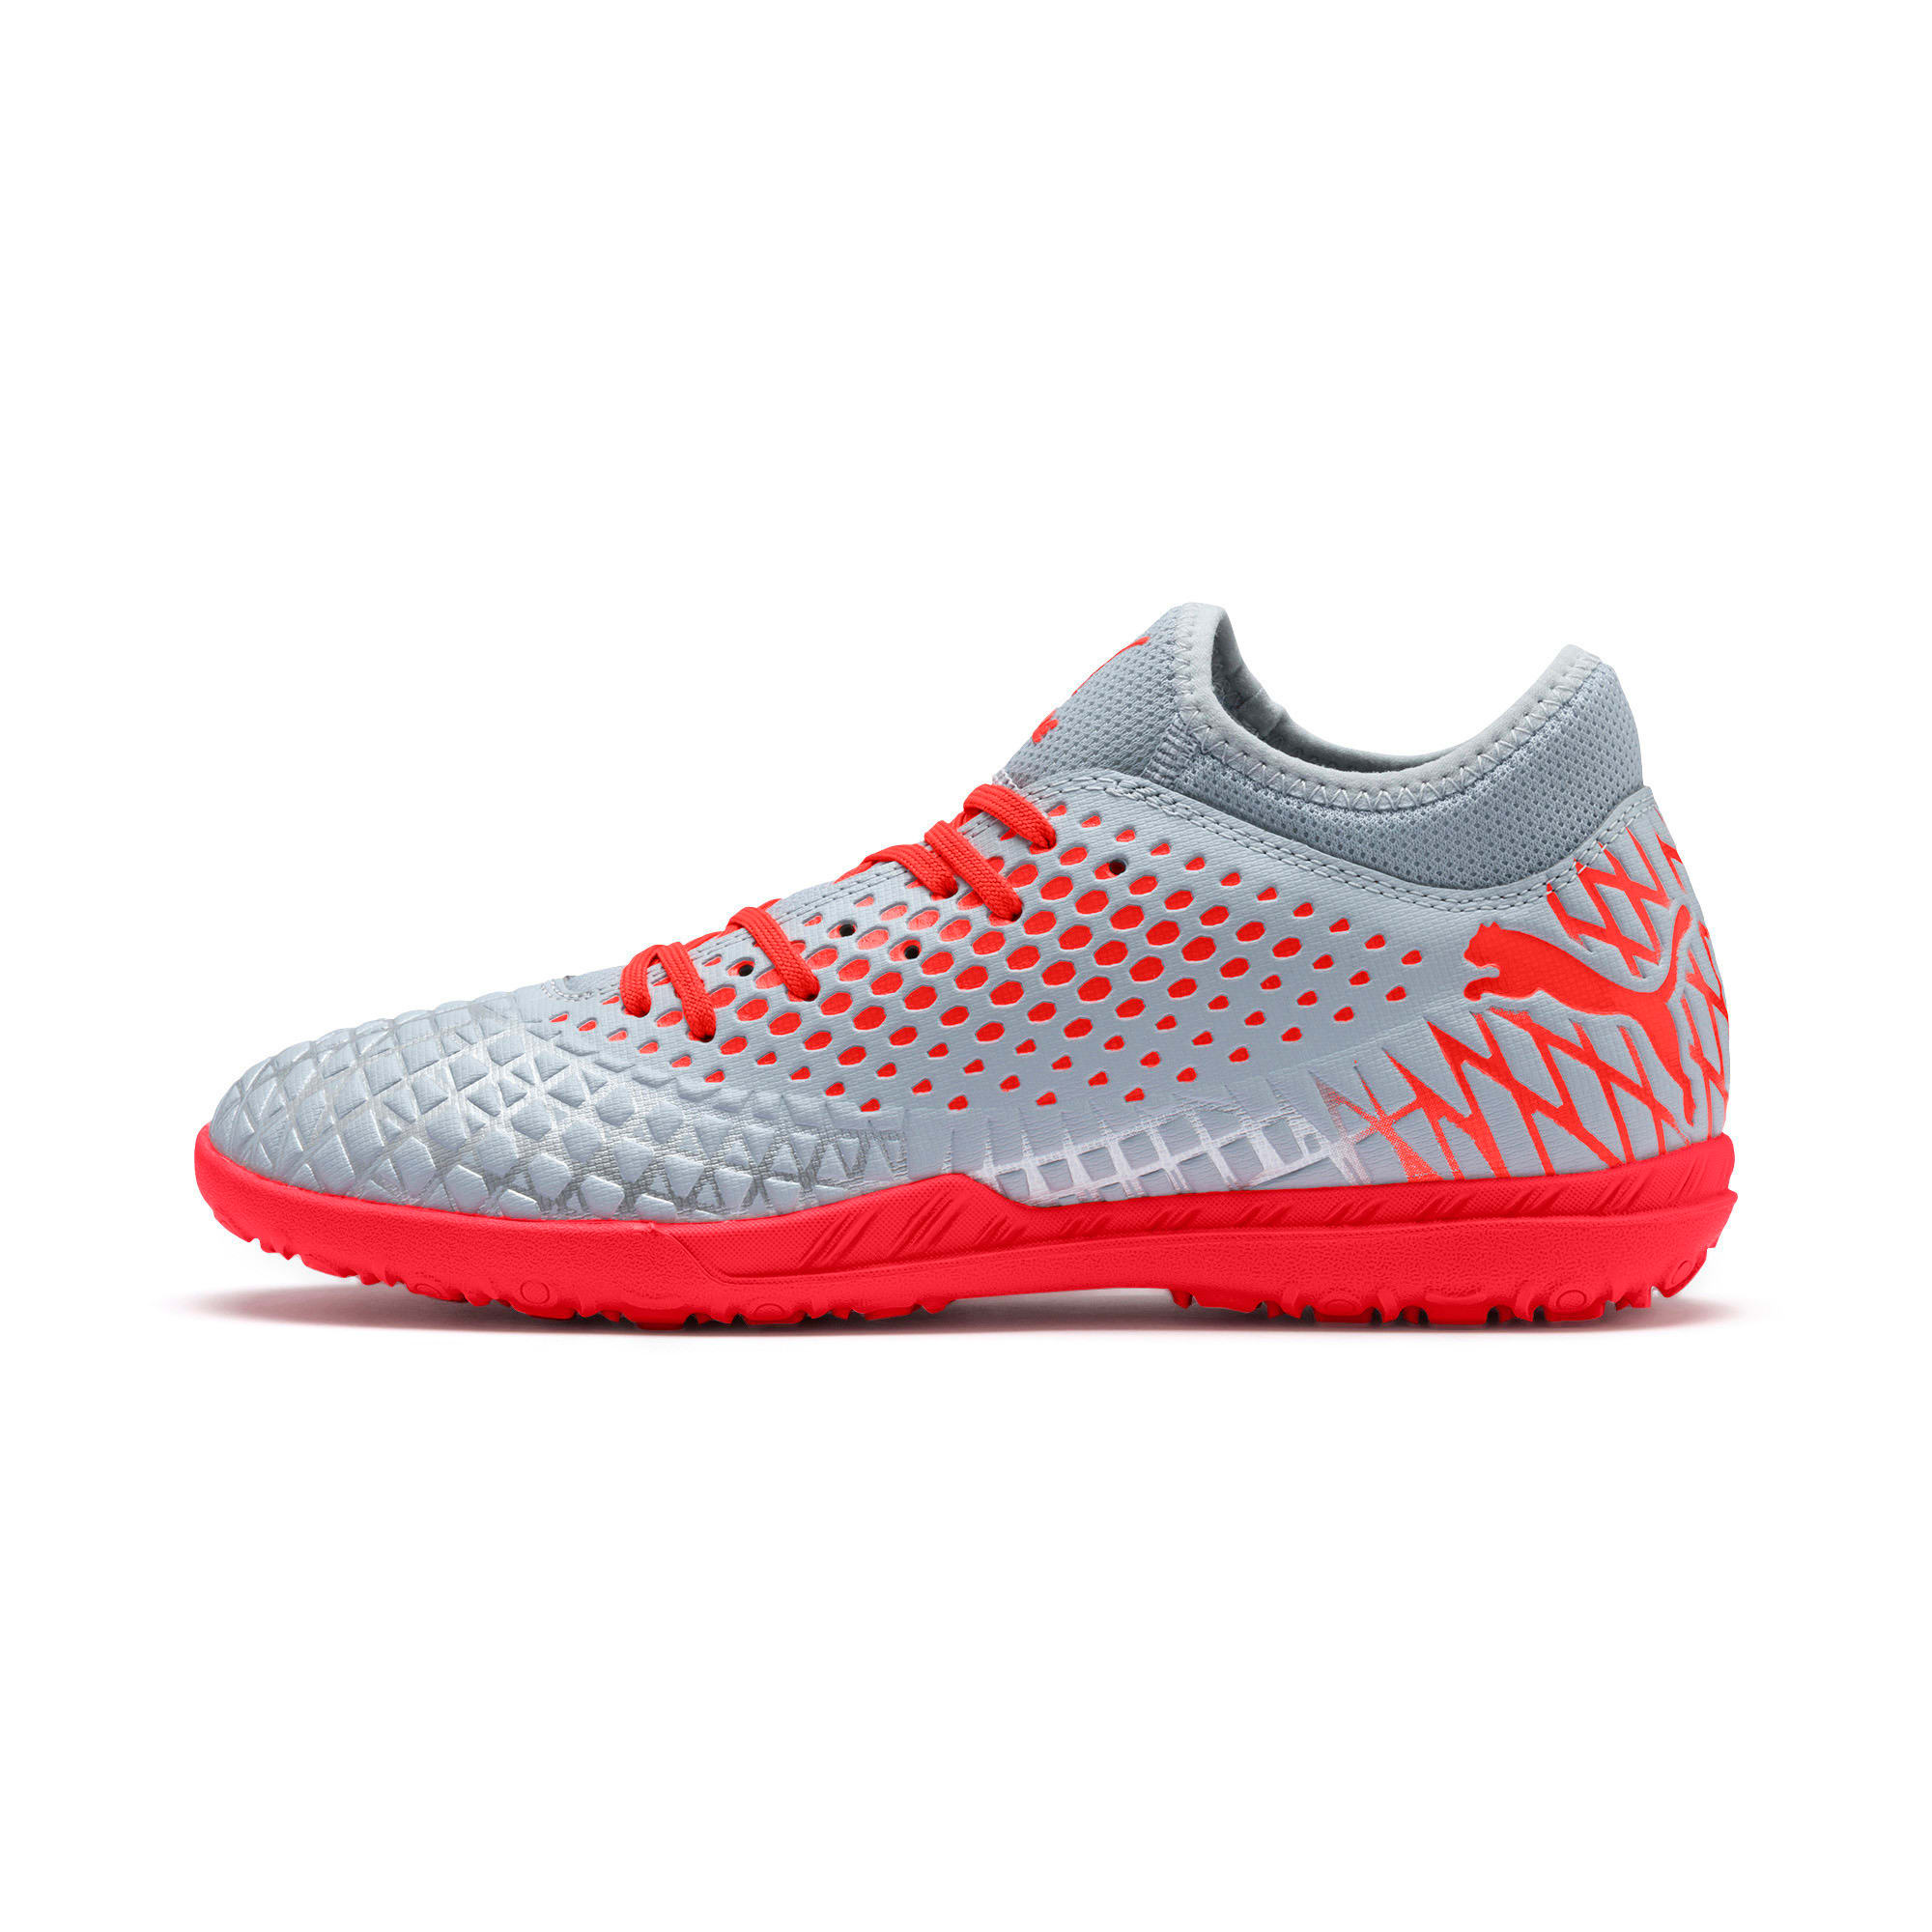 Thumbnail 1 of FUTURE 4.4 TT Herren Fußballschuhe, Glacial Blue-Nrgy Red, medium